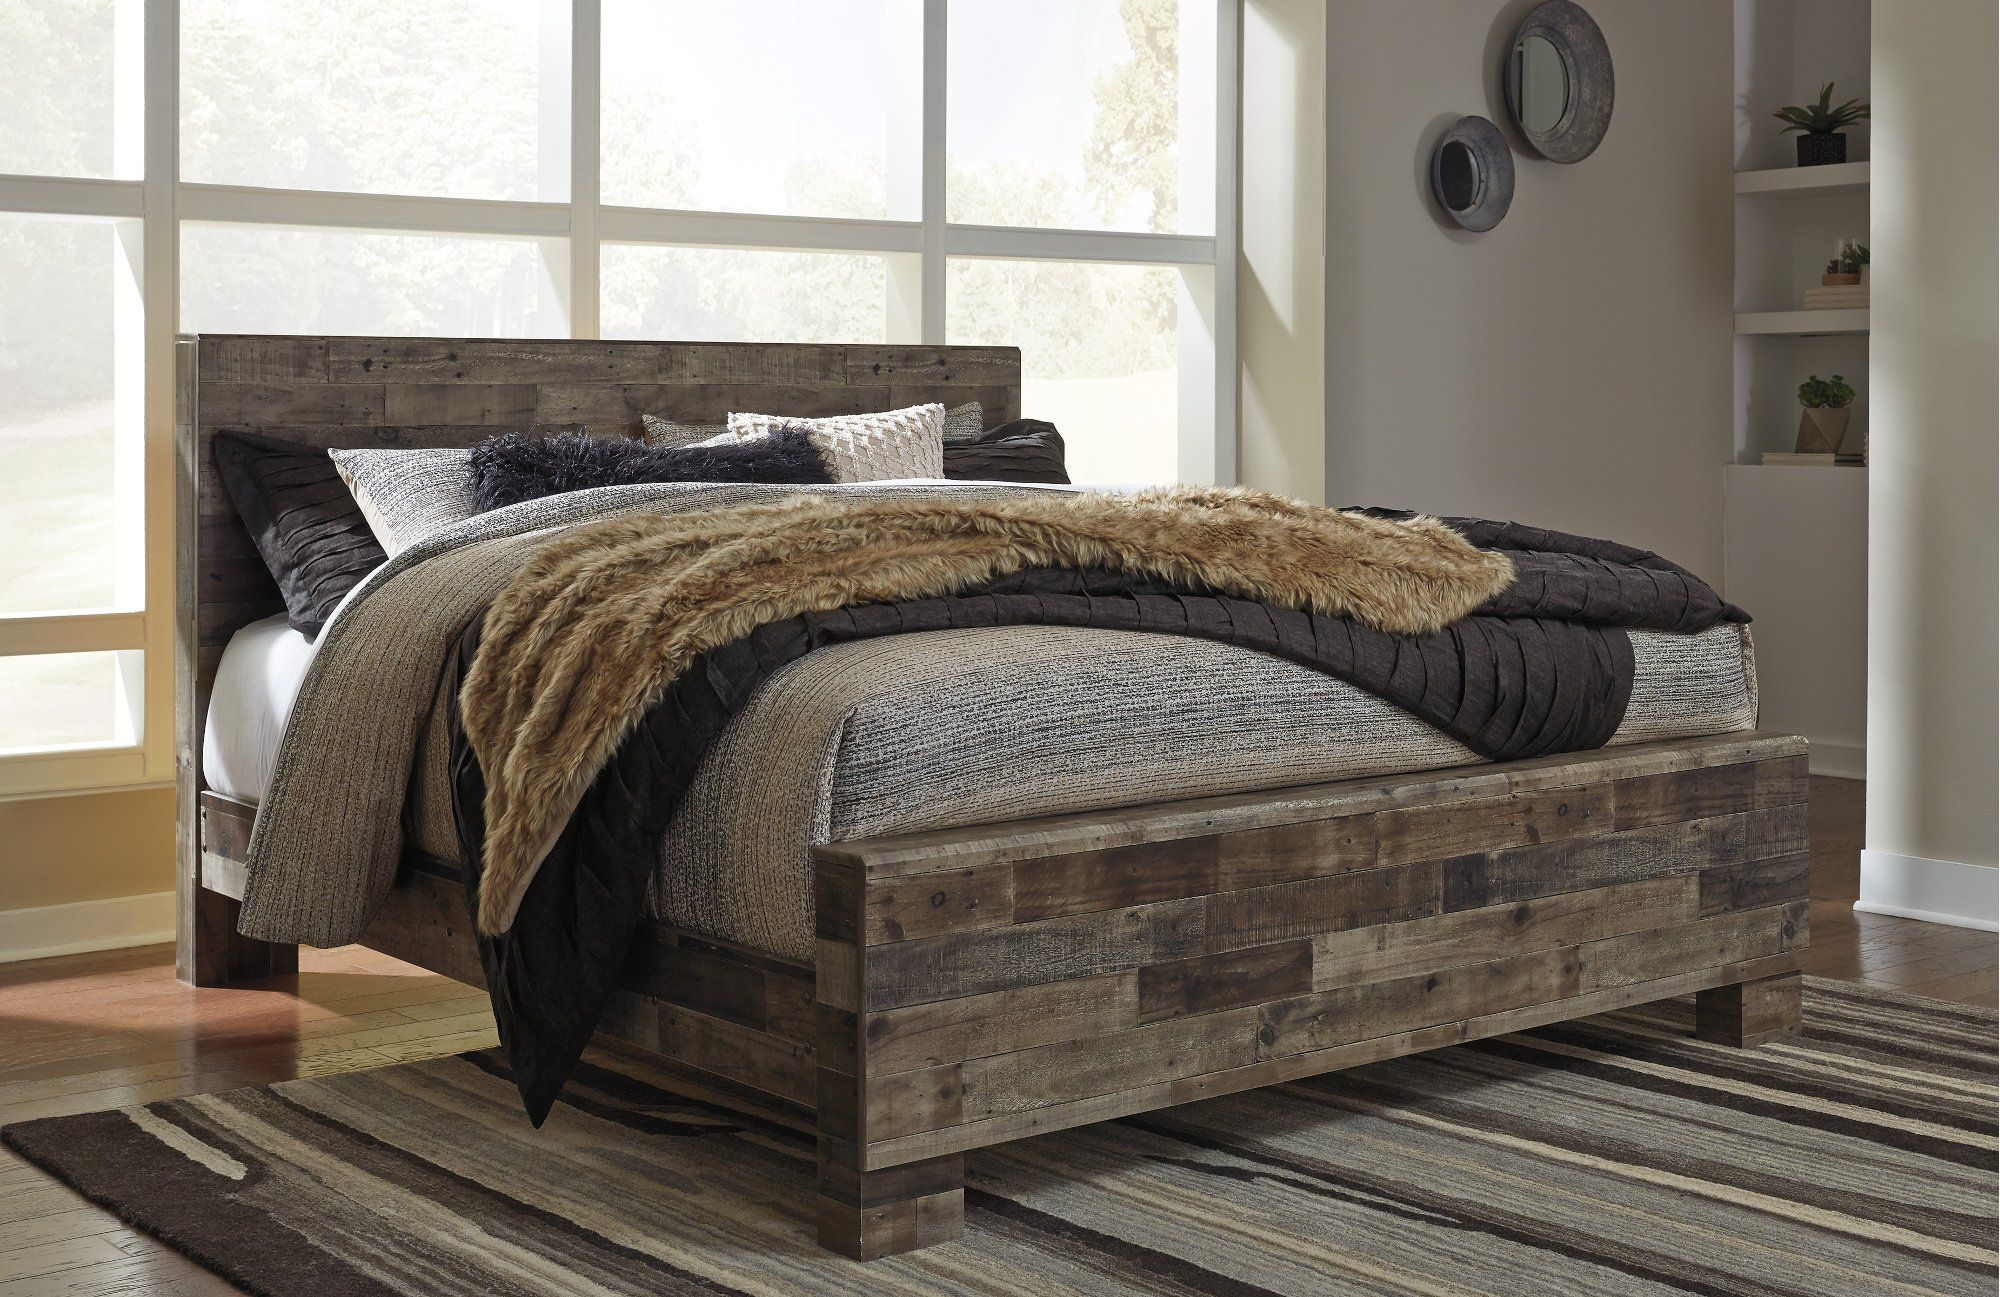 Modern Farmhouse Rustic King Size Bed Broadmore In 2020 King Size Bedroom Sets Rustic Queen Bed Queen Sized Bedroom Sets